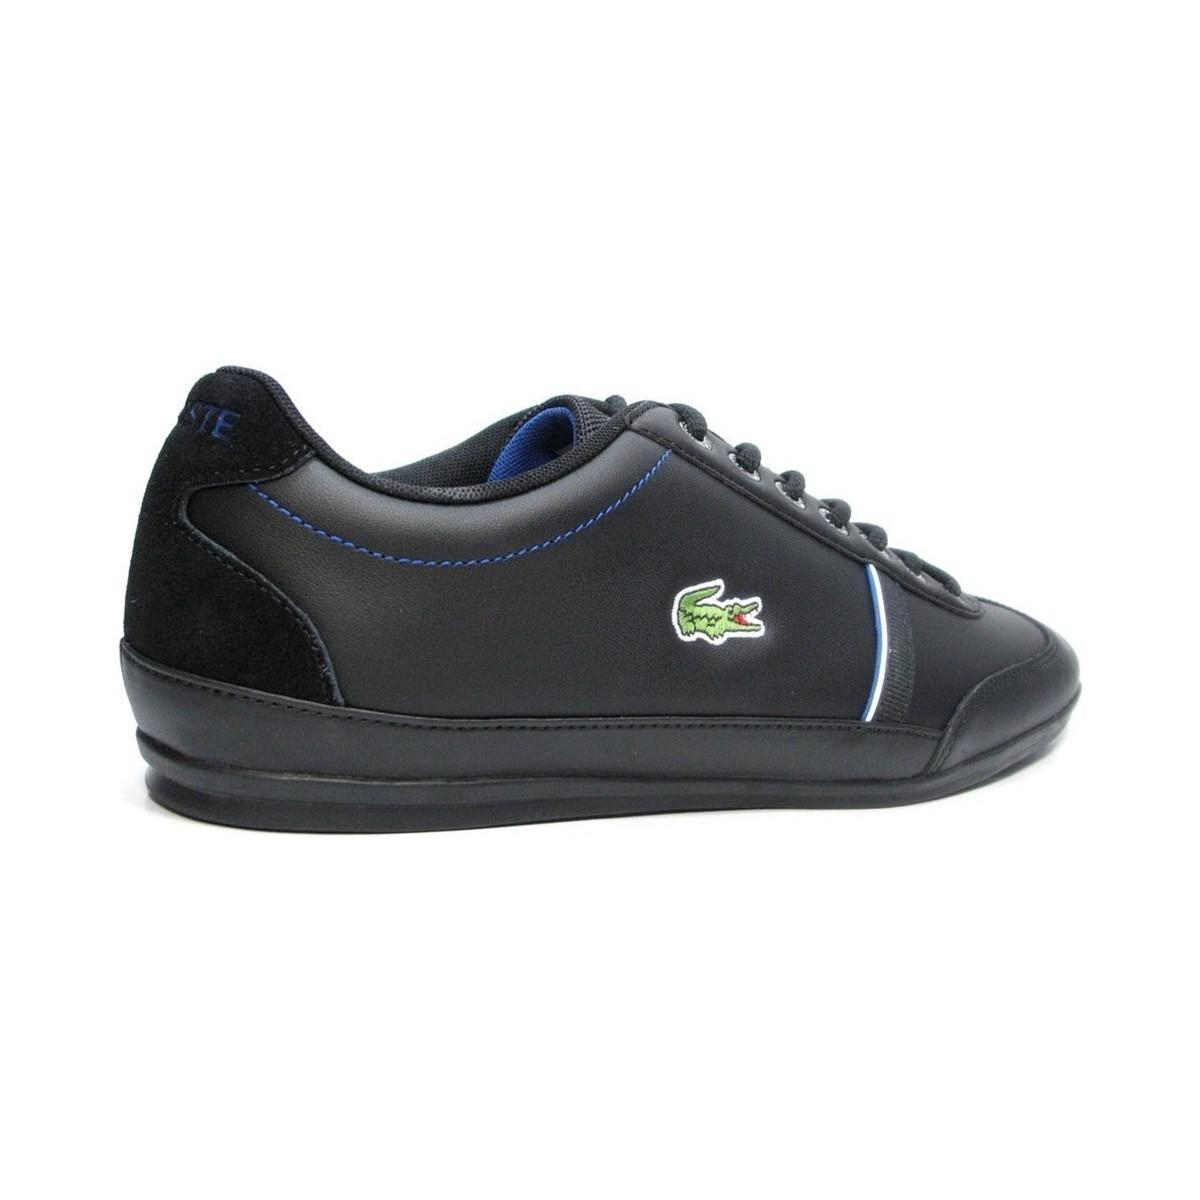 Lacoste Sneakers Misano 318 1 CAM Casual Fashion Shoes Leather Lace Up Black